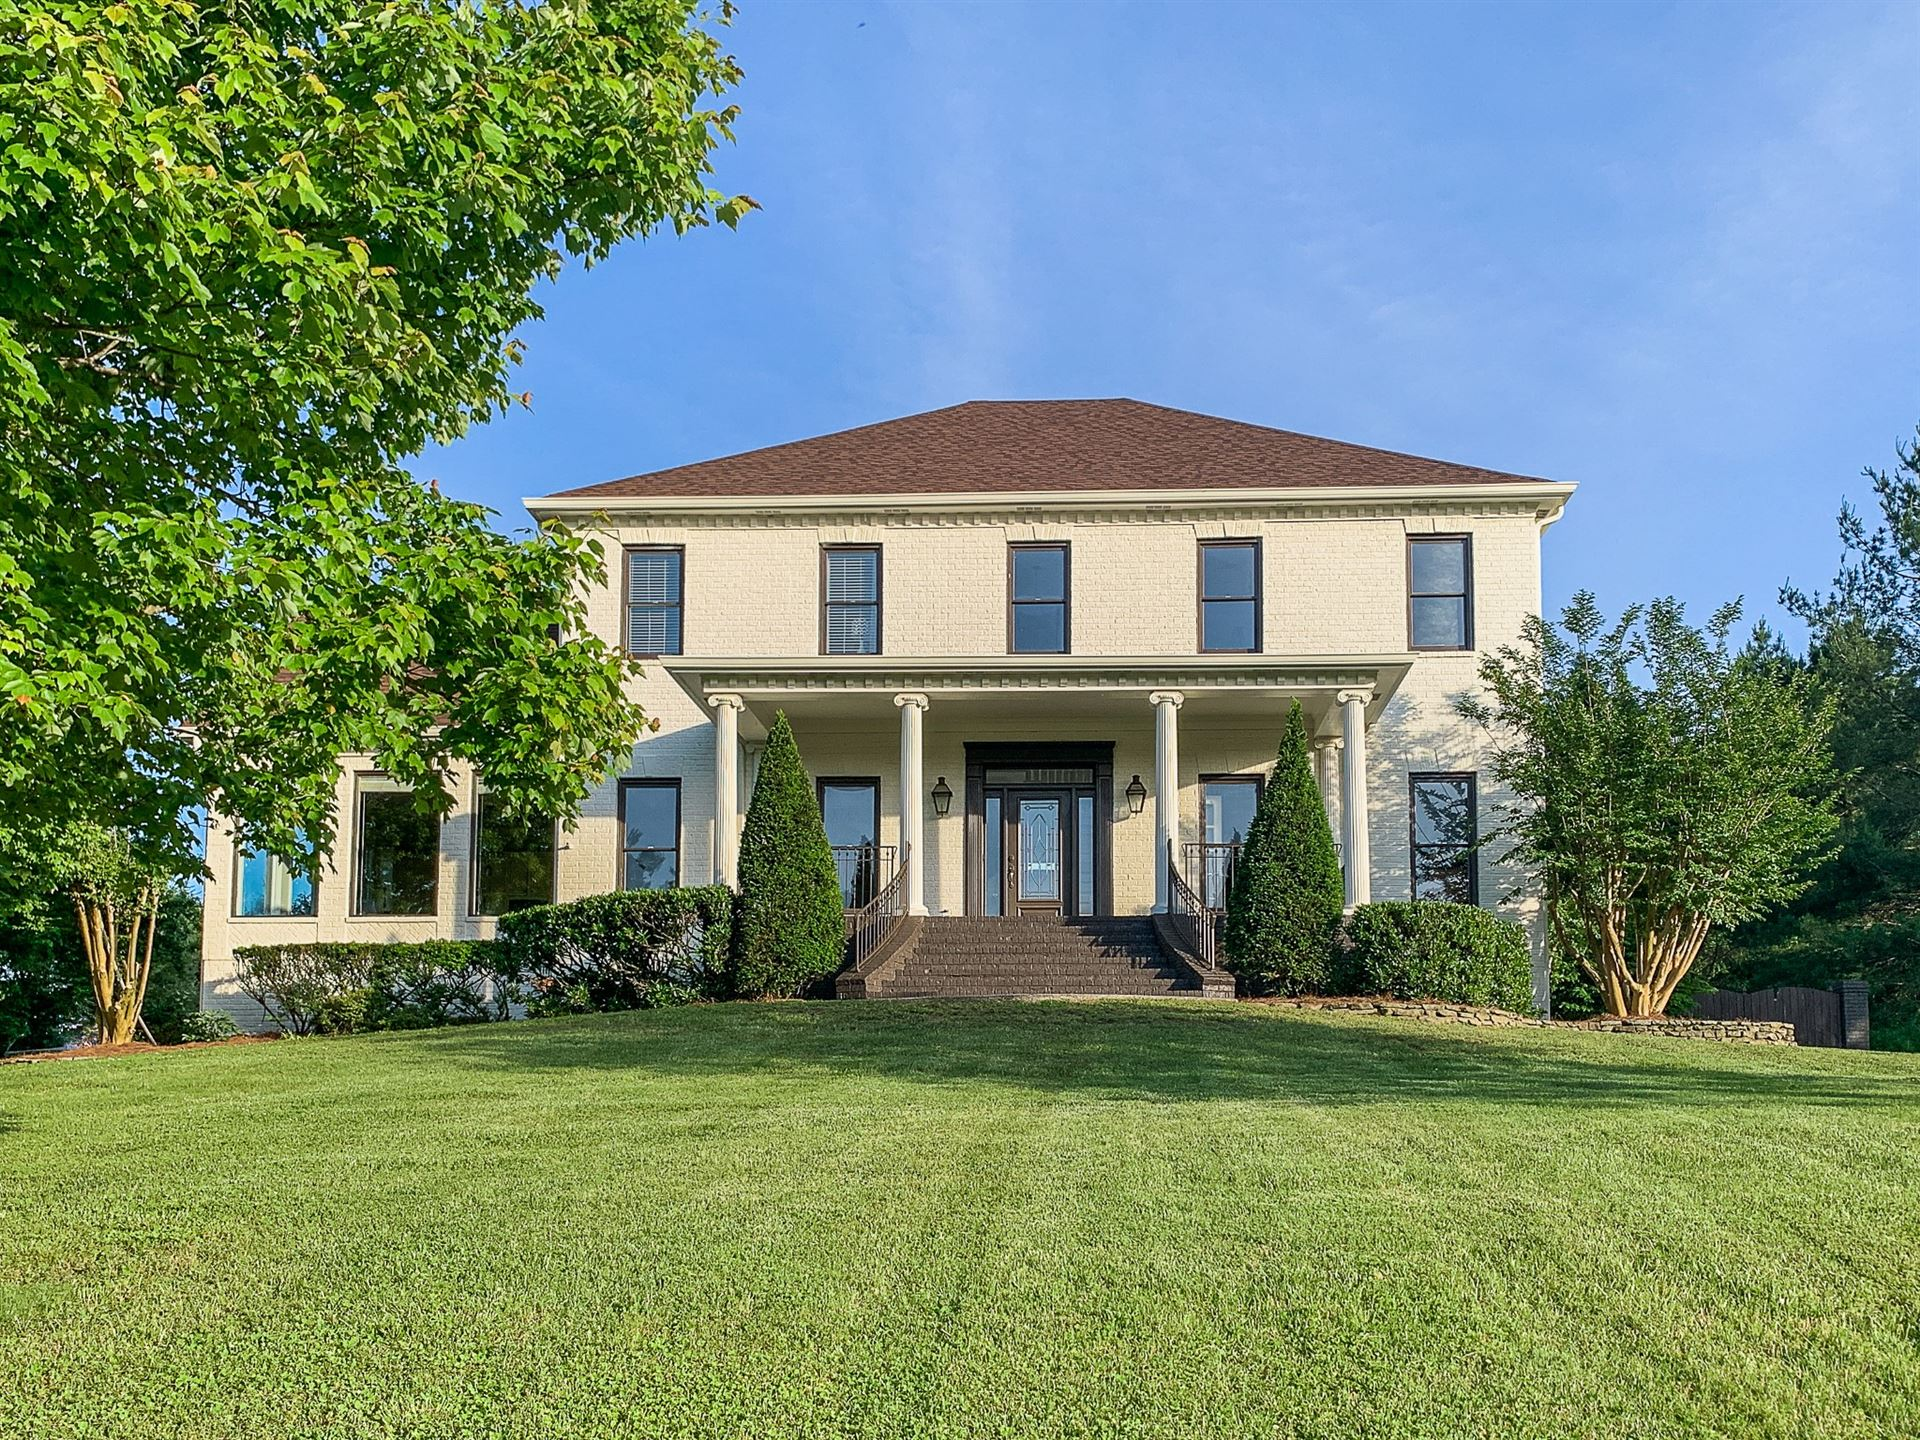 Photo of 1605 Ridley Ct, Franklin, TN 37064 (MLS # 2253531)